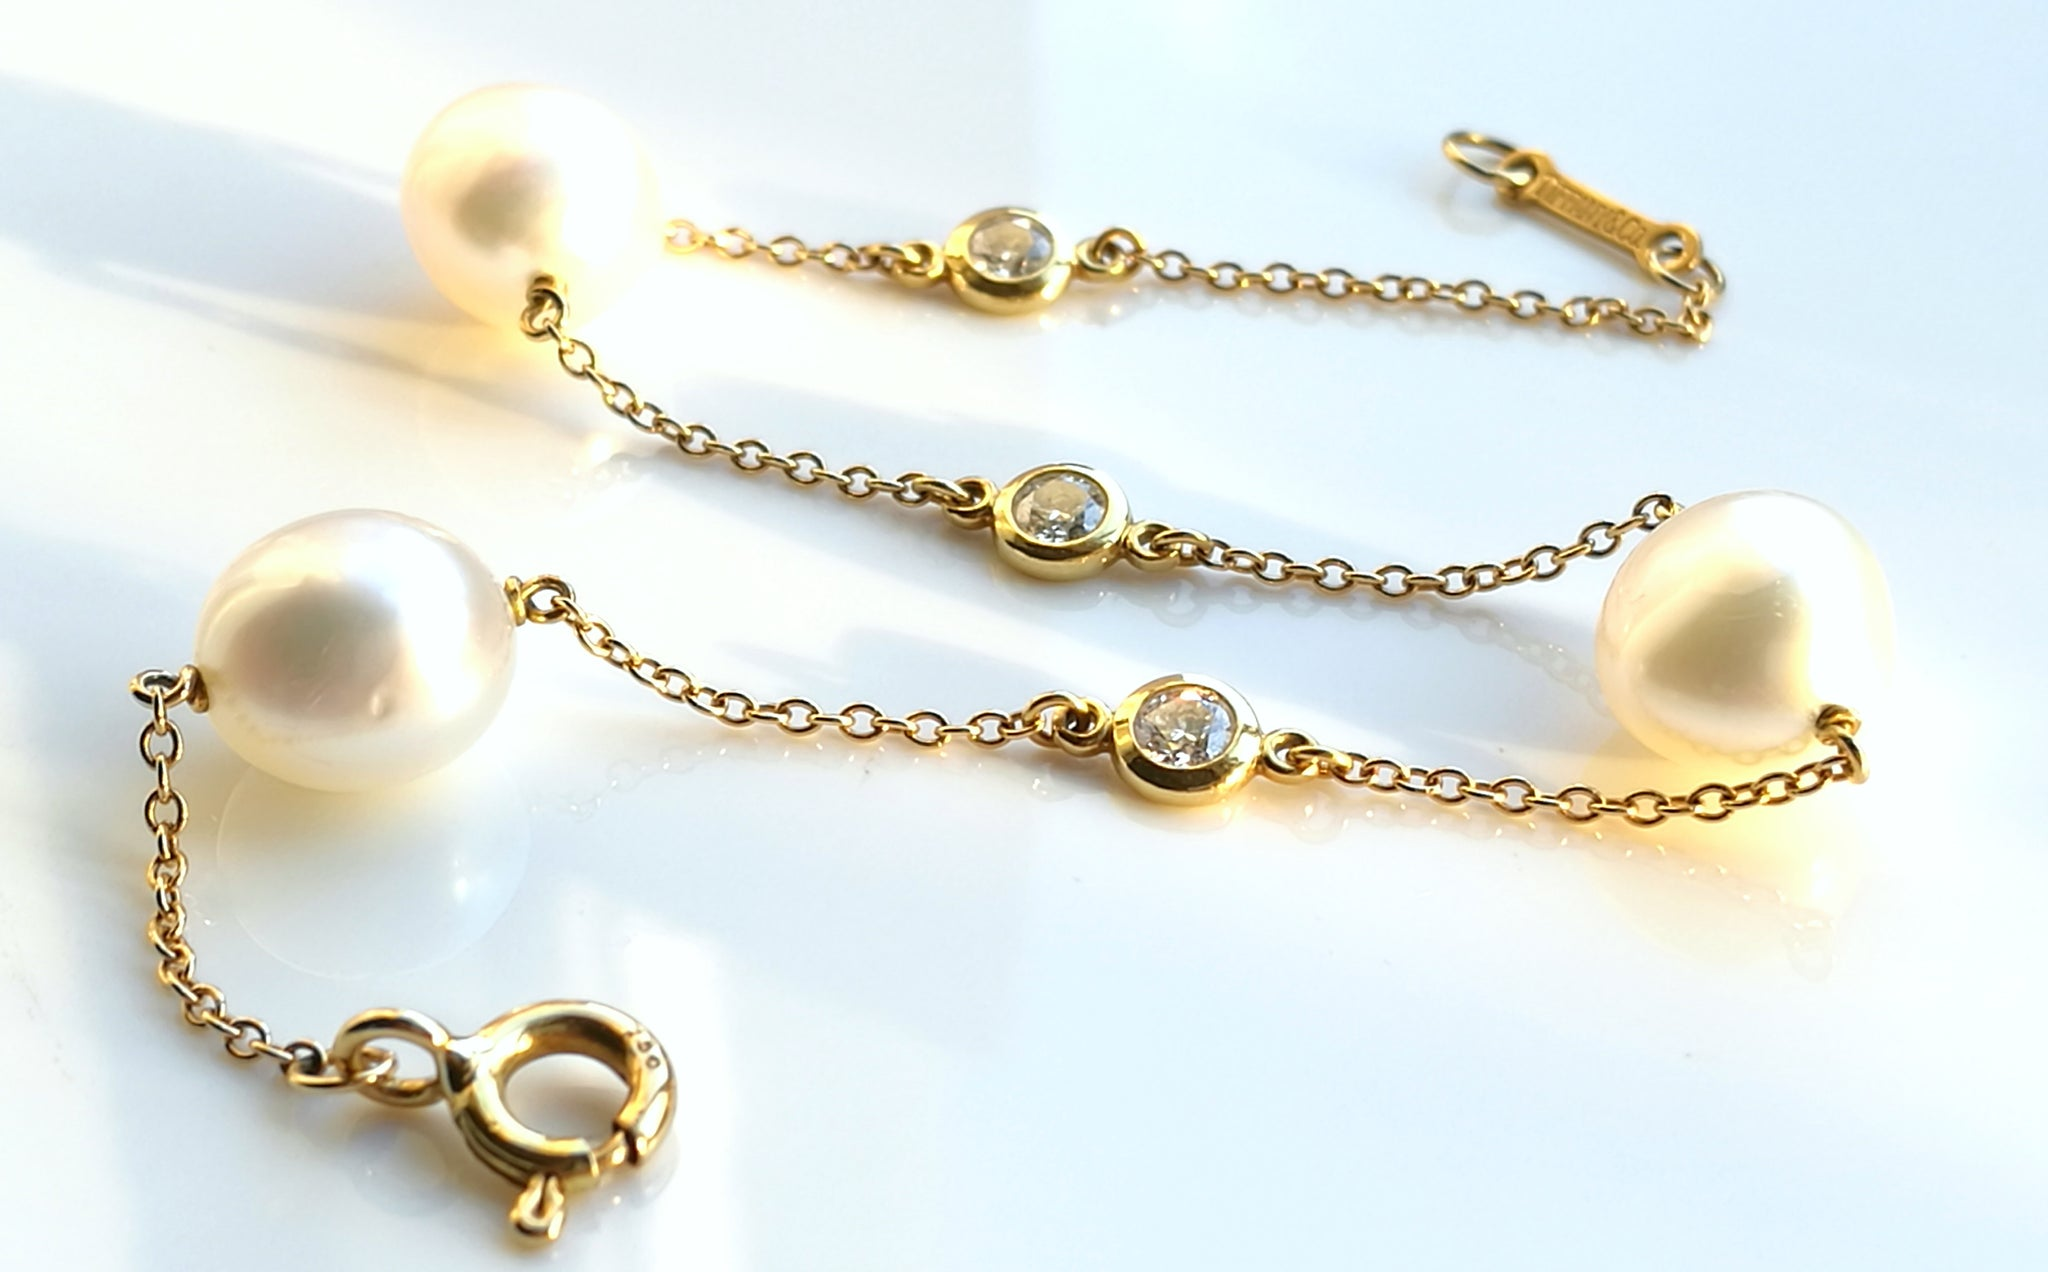 e5355d1f65a9a Tiffany & Co. Elsa Peretti 'Diamonds by the Yard' Bracelet in 18k Gold with  Pearls